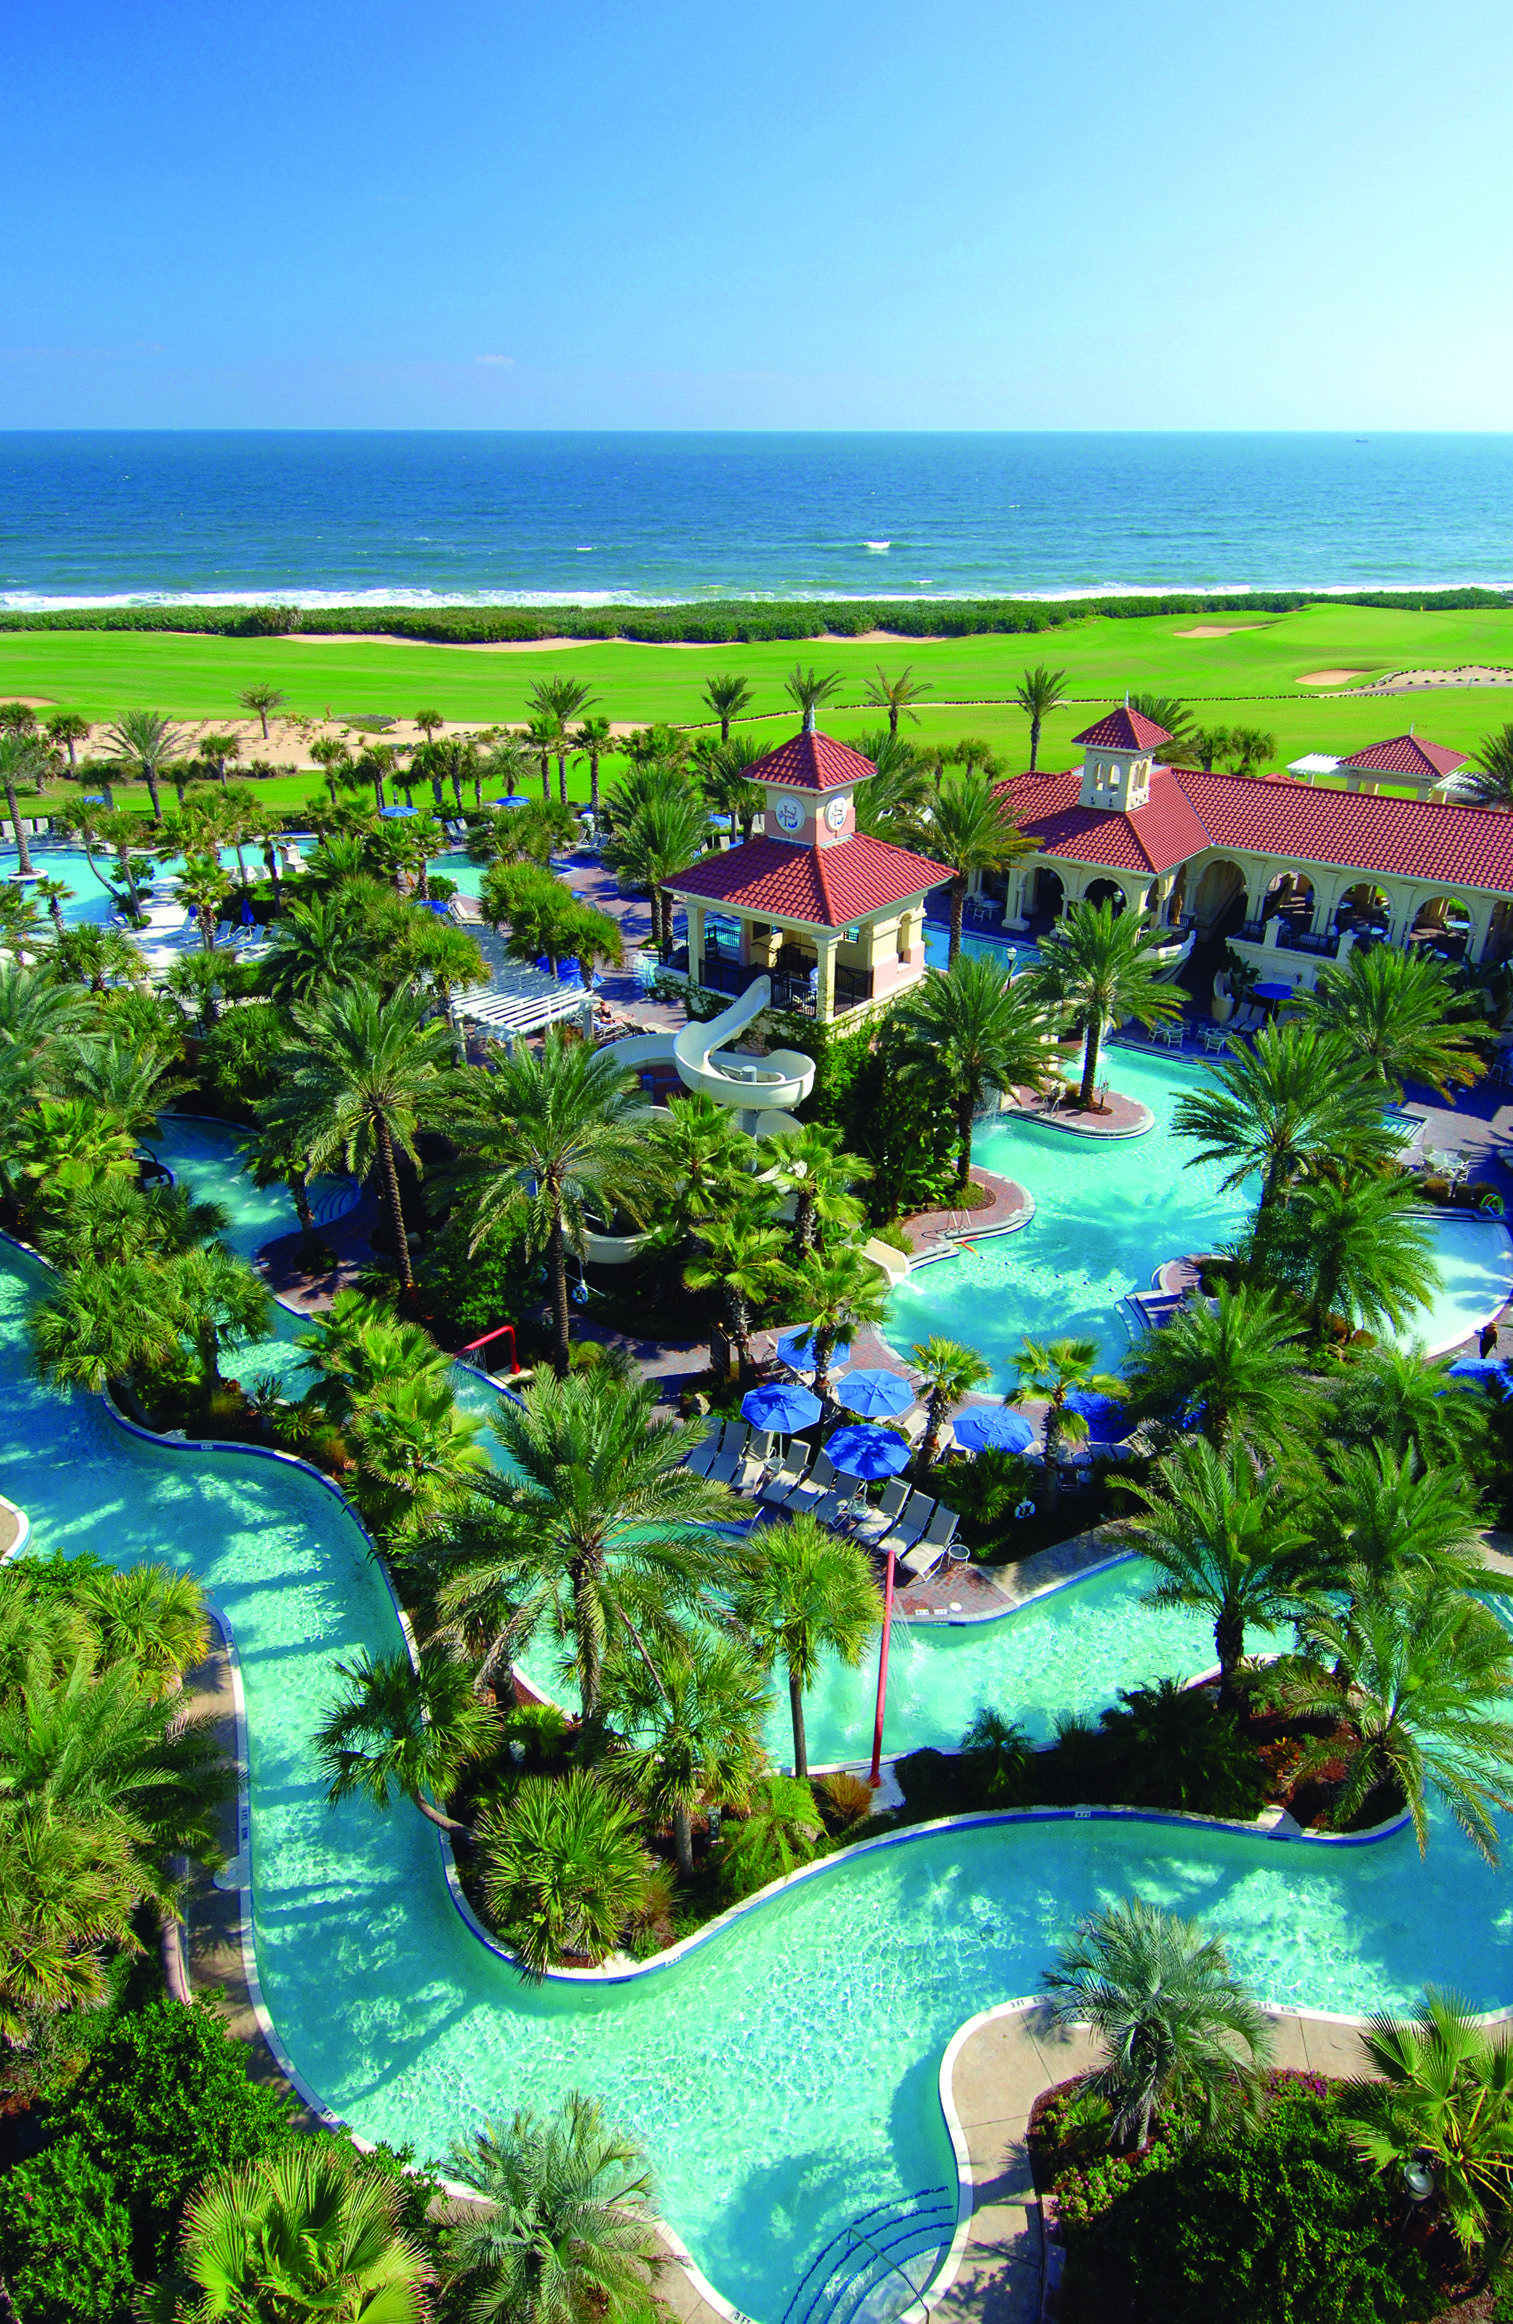 Search For Pink Shells Along The Beach At This Pastel Colored Resort Near St Augustine Then Give In To The Kids E Schone Orte Ferienanlage Traumurlaubsziele